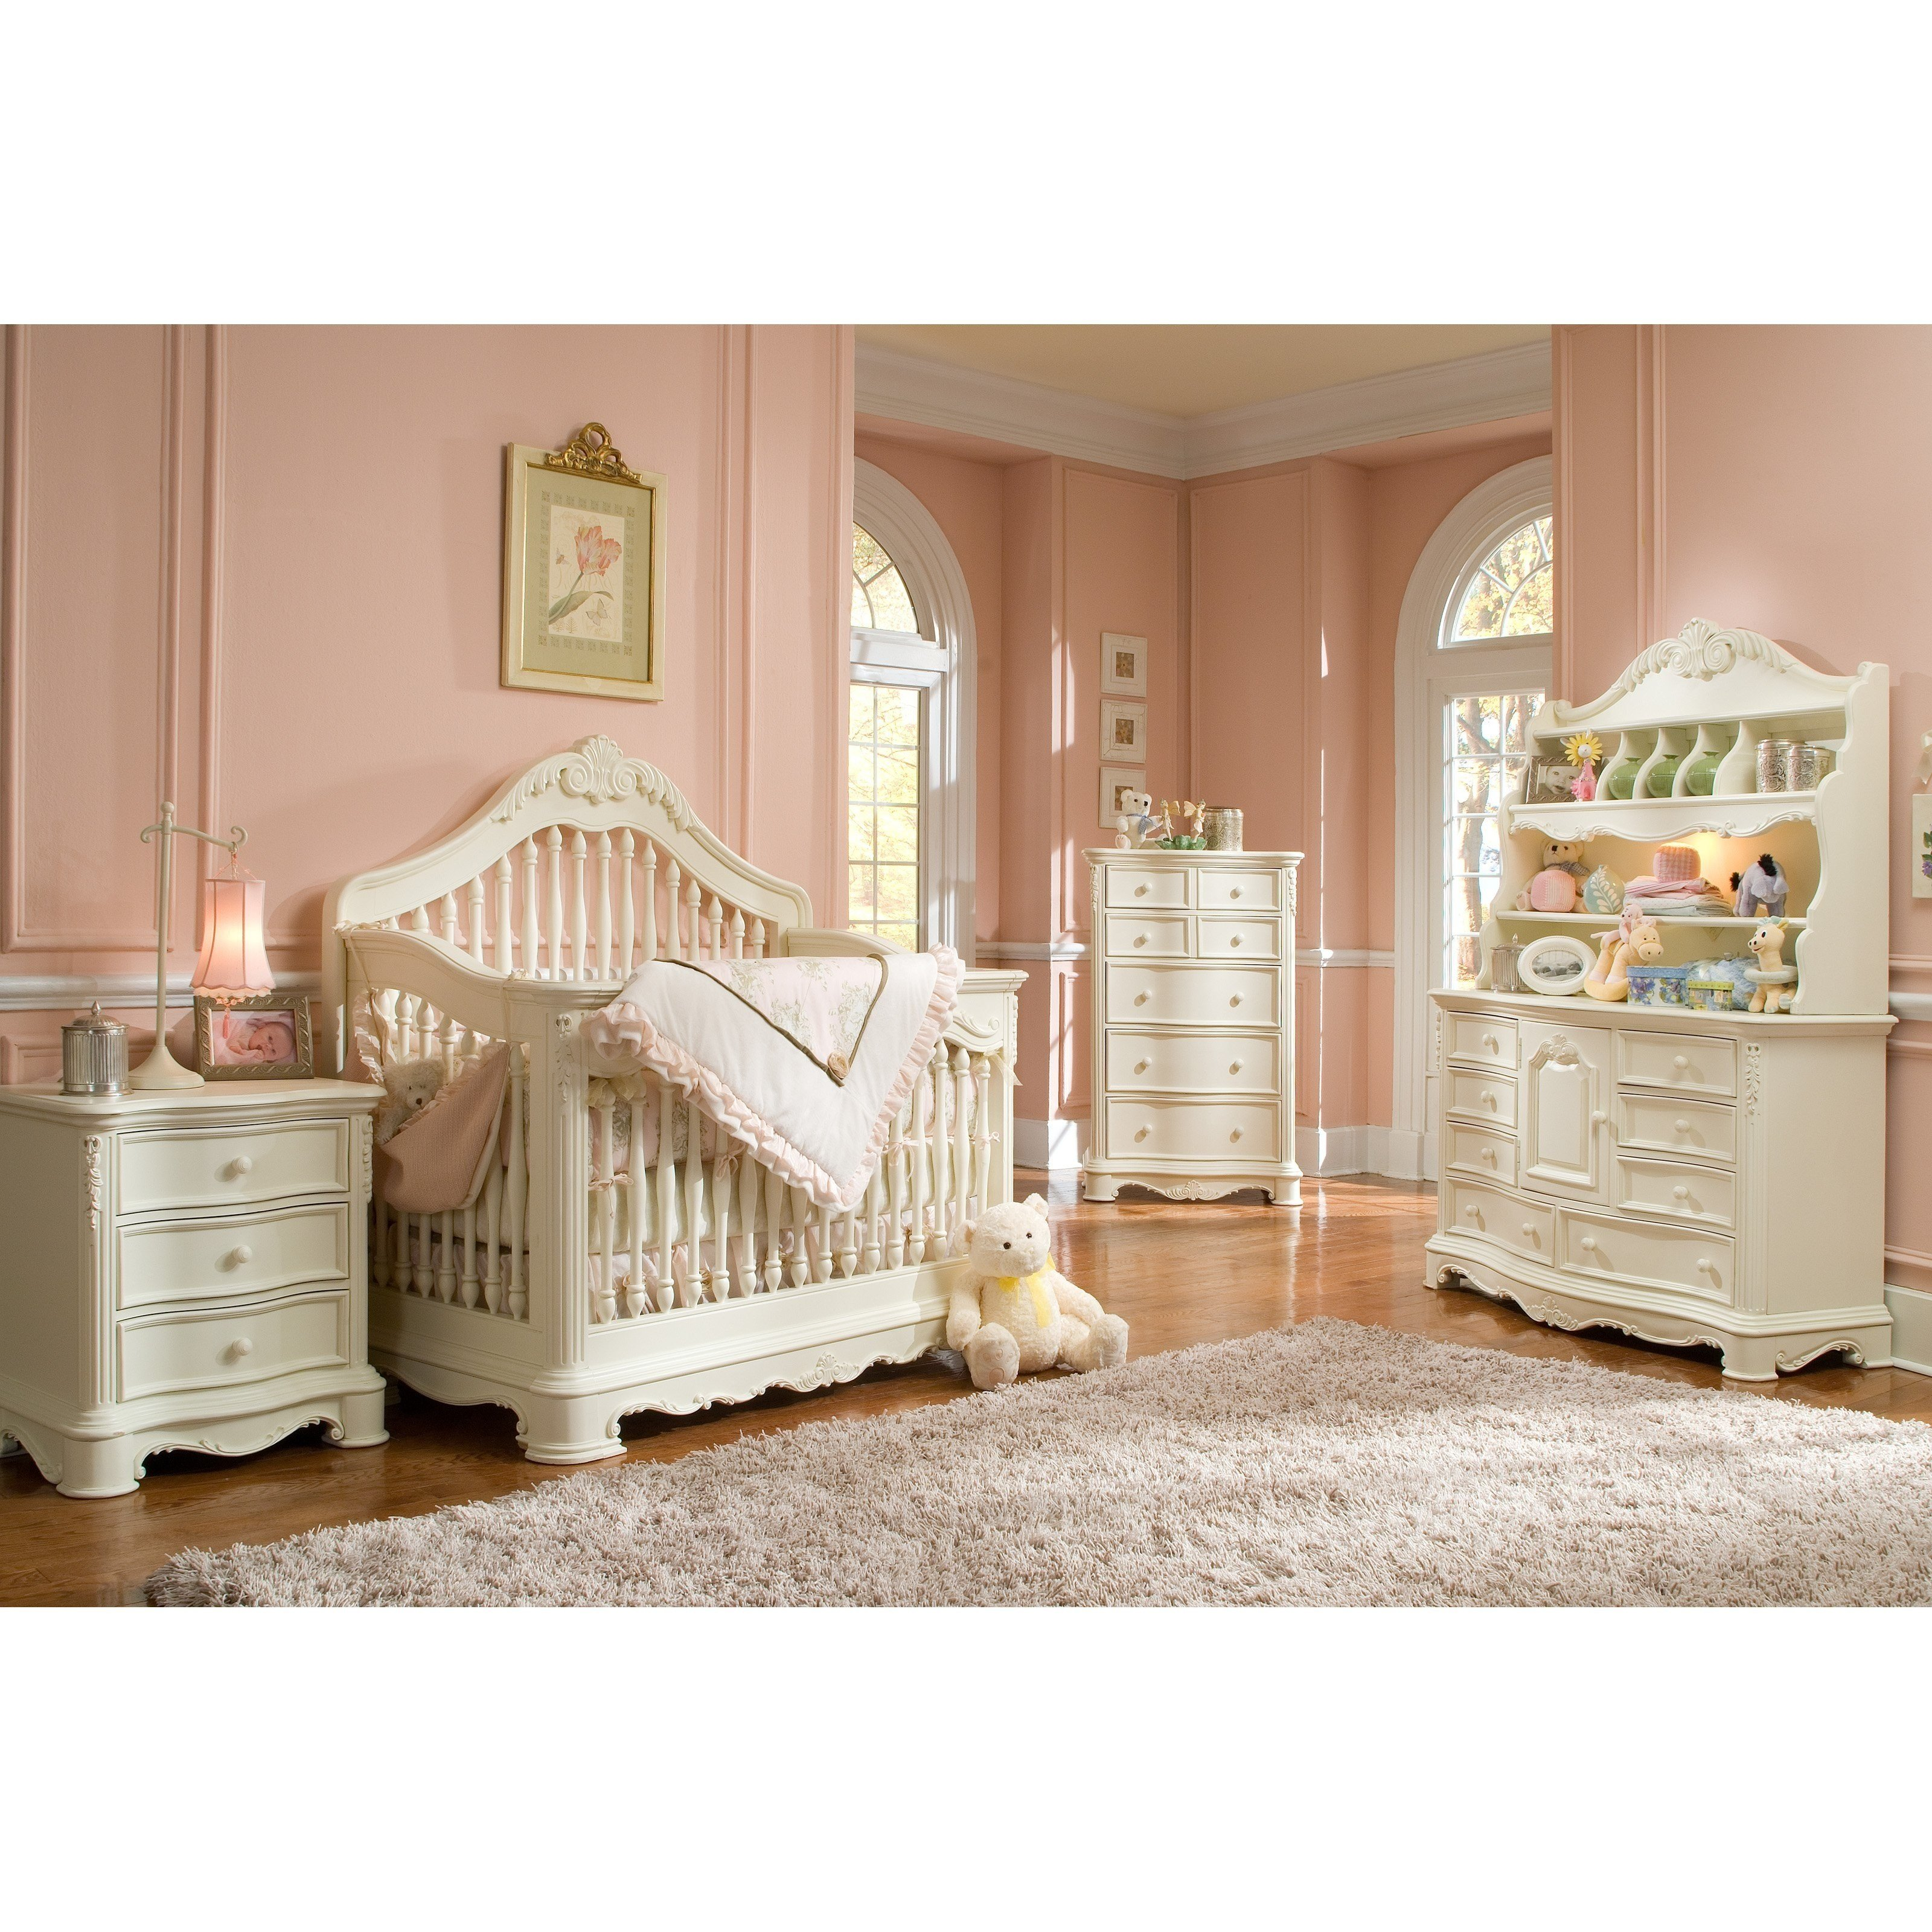 Best 52 Rustic Baby Furniture Sets White Rustic Bedroom With Pictures